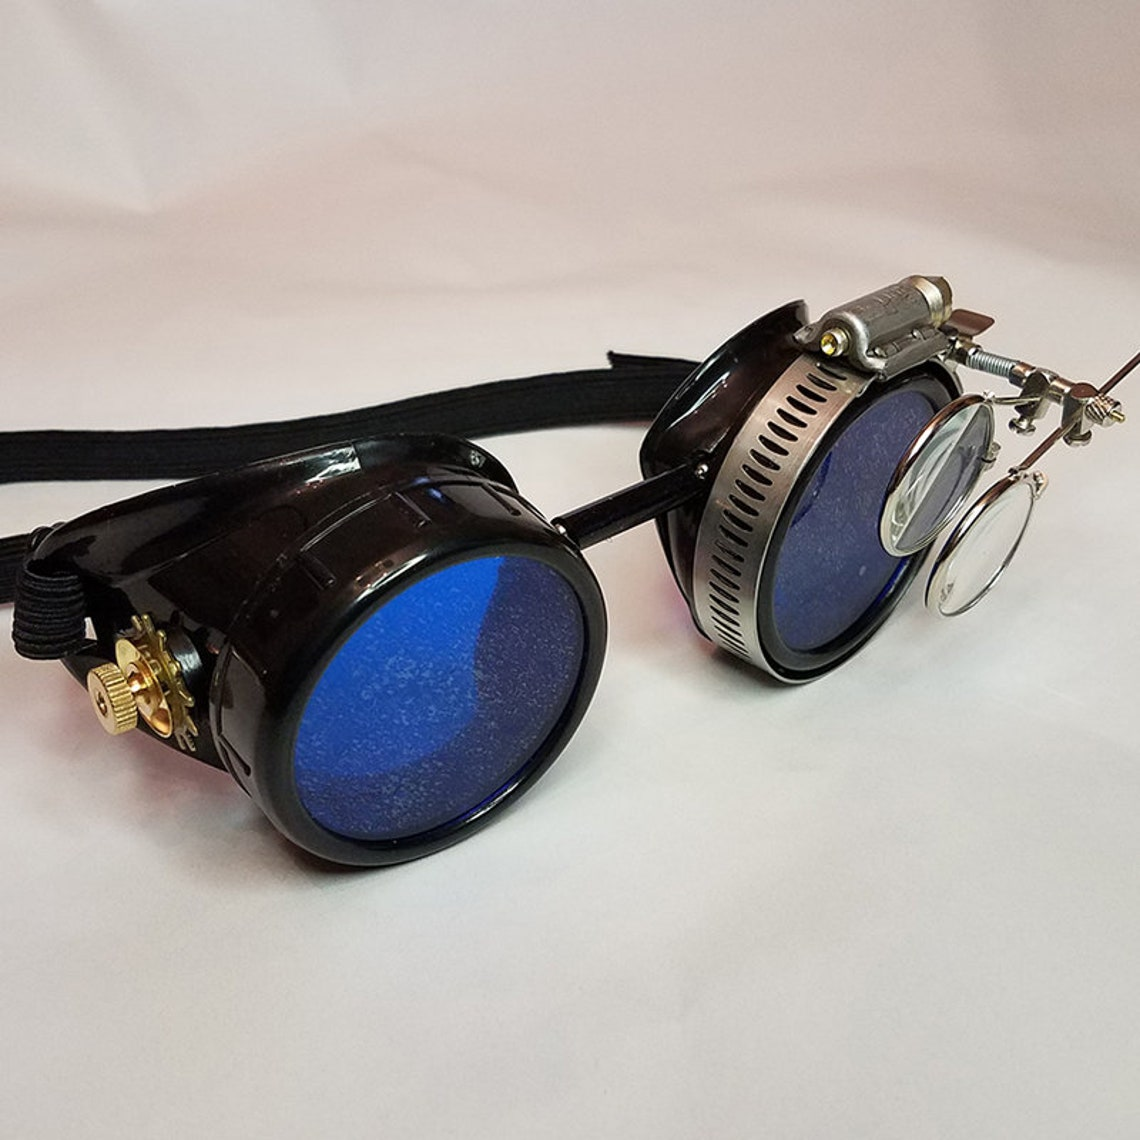 STEAMPUNK GOGGLES Black with Blue Lenses Brass Accents and Magnifying Loupes Victorian Welding Motorcycle Cyber Optic-Conductors Rave